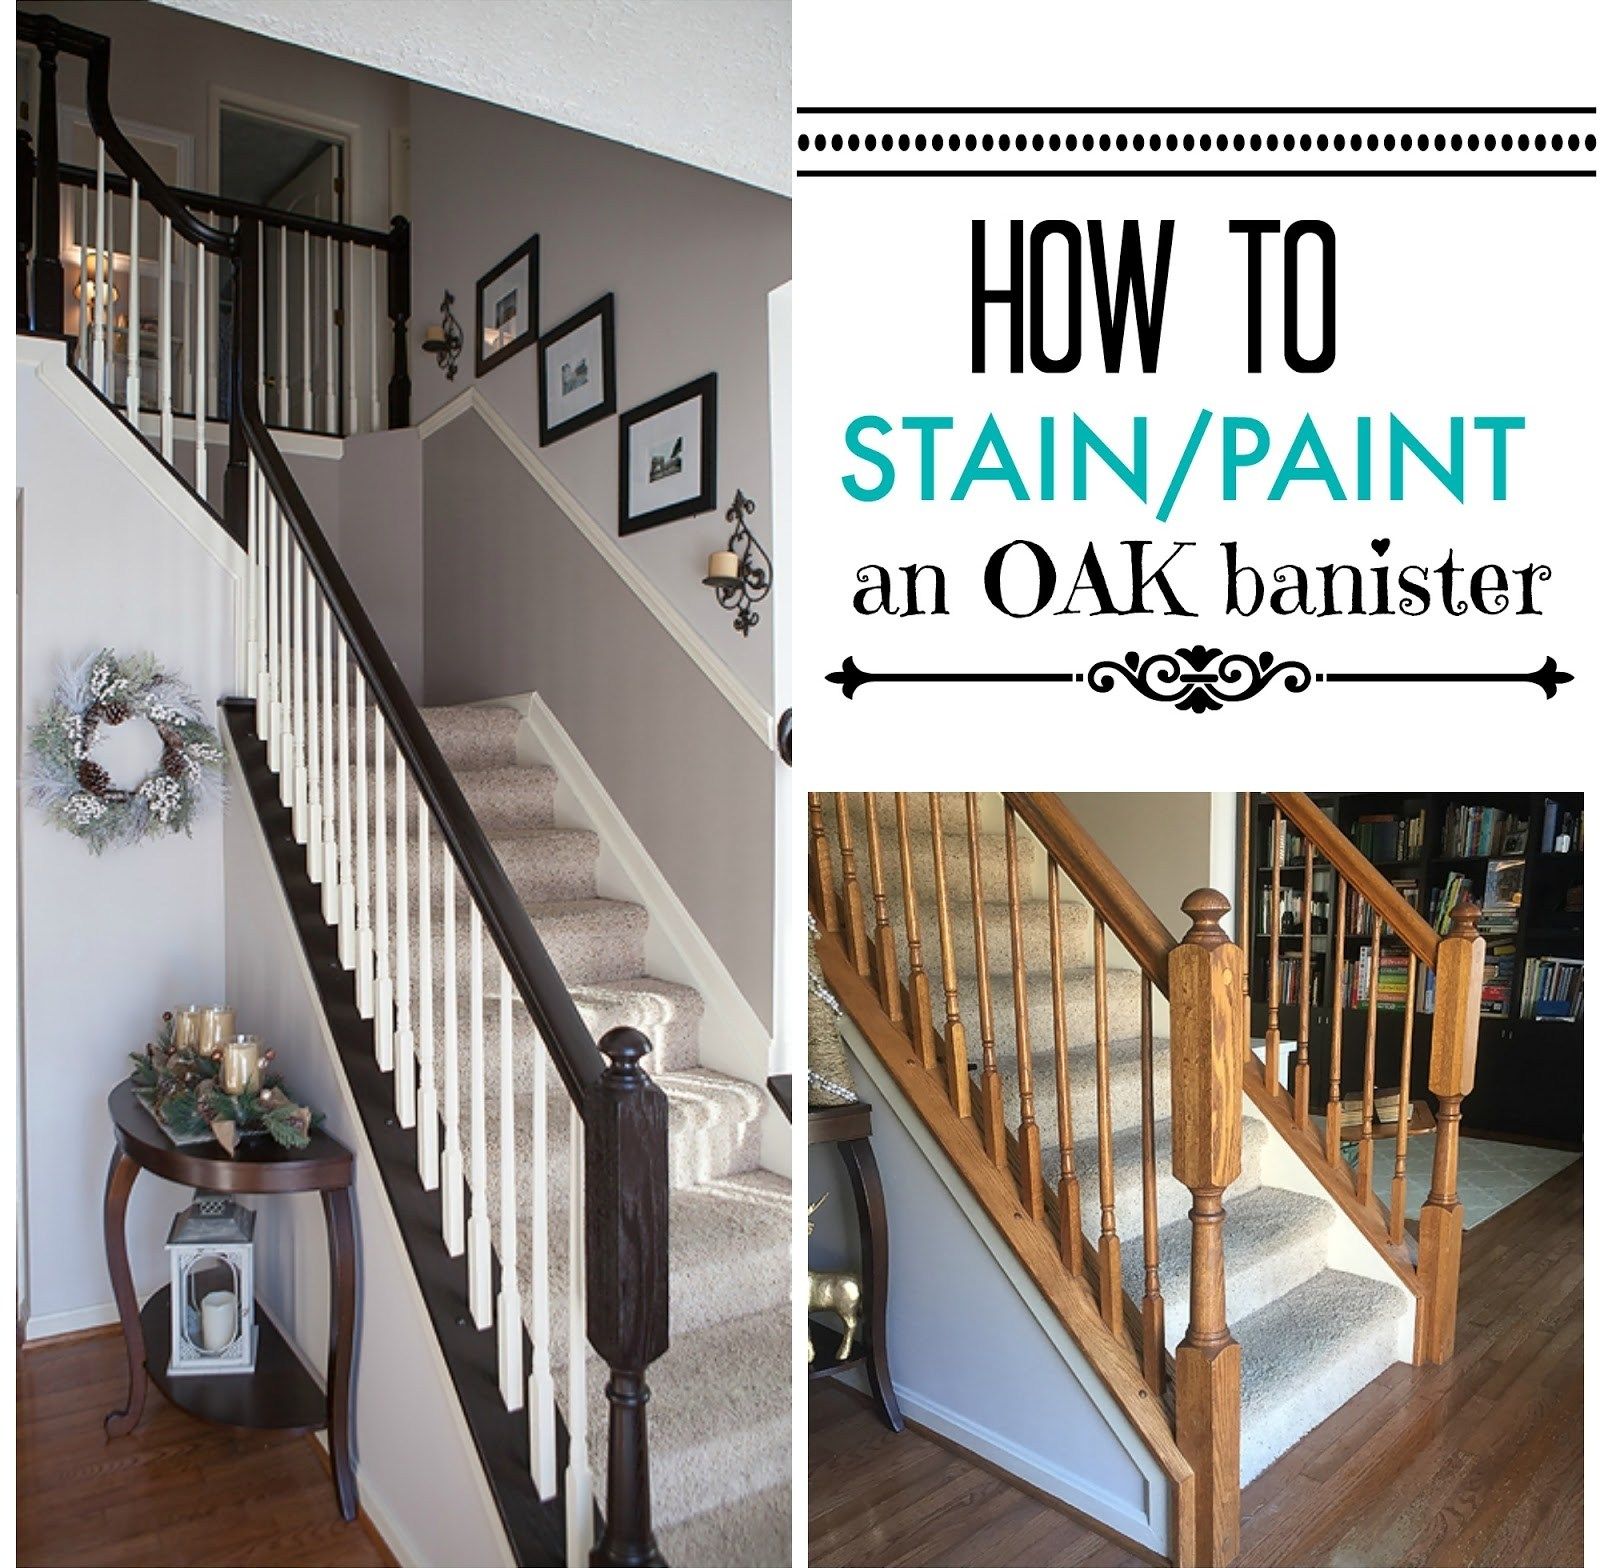 Diy How To Stain And Paint Oak Stair Banisters Heather O Steen | Painted And Stained Stairs | Easy Diy | Two Tone | Espresso Stained | Pinterest | Home